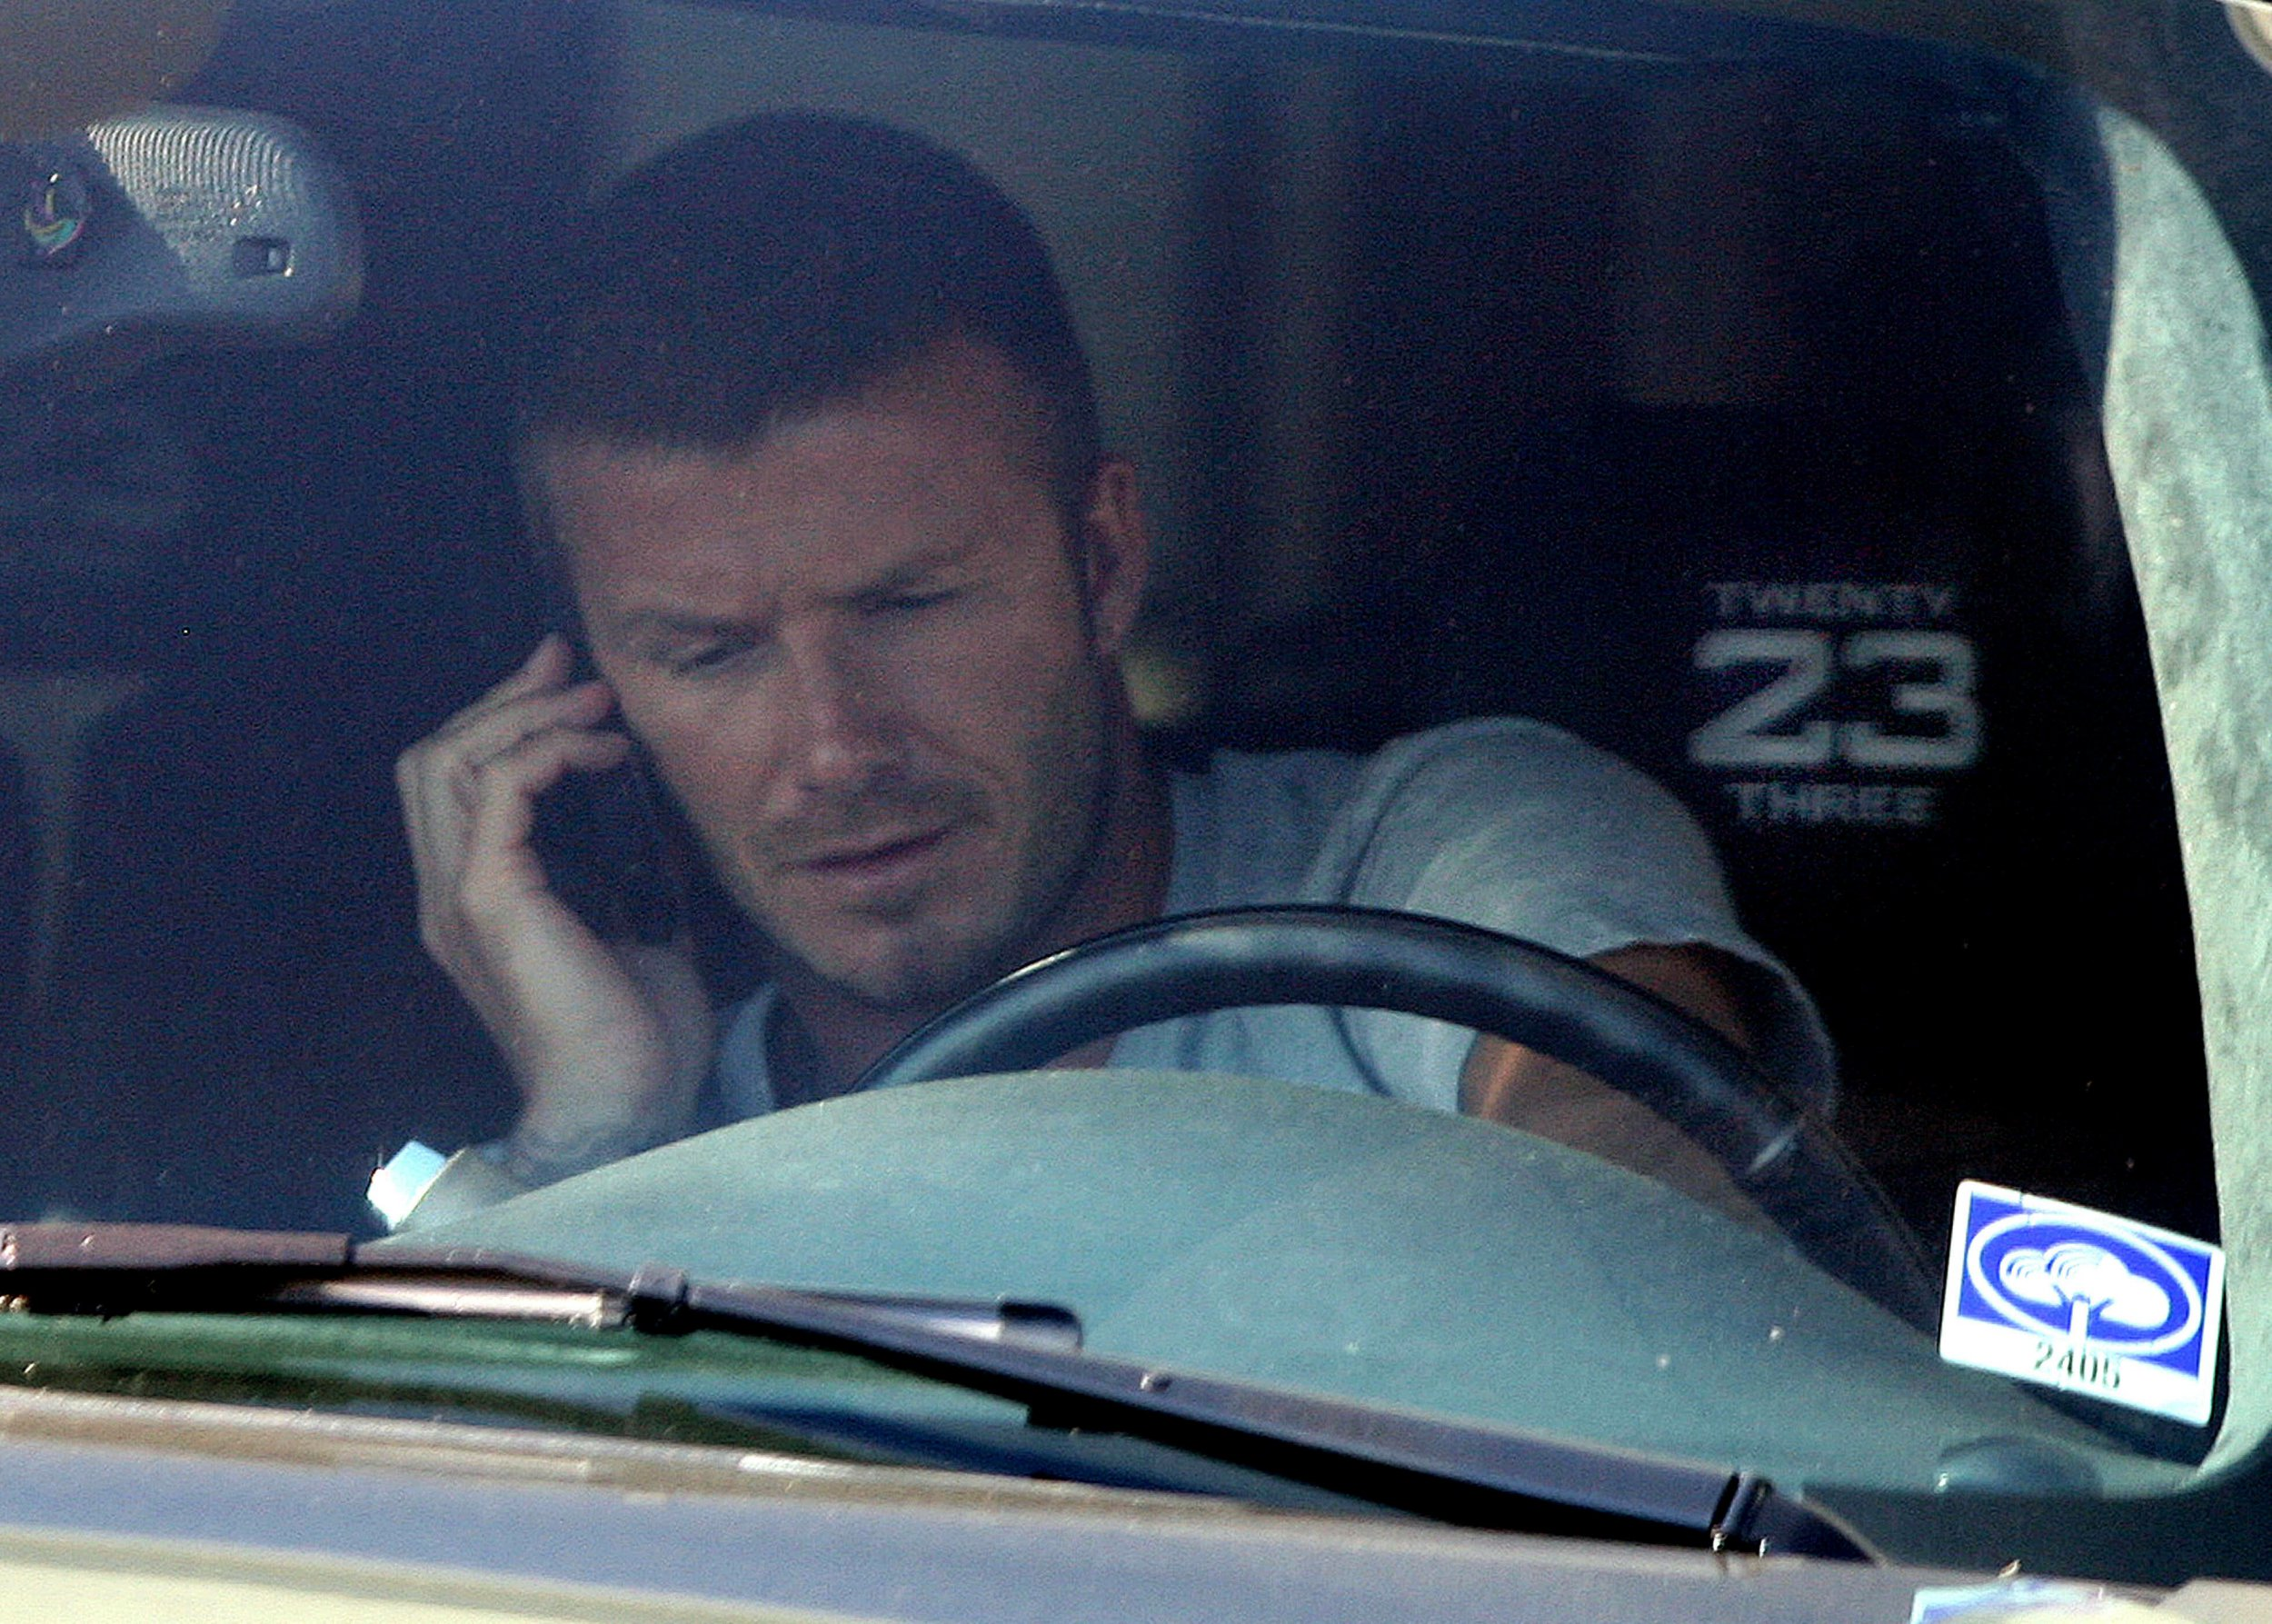 Stock photos of David Beckham and his Cadillac. US reports claimed that the soccer star was involved in a collision in a black Cadillac, it it unknown if this is the same vehicle. Pictured: David Beckham and his Cadillac Escalade Ref: SPL275371 070511 Picture by: Splash News Splash News and Pictures Los Angeles: 310-821-2666 New York: 212-619-2666 London: 870-934-2666 photodesk@splashnews.com